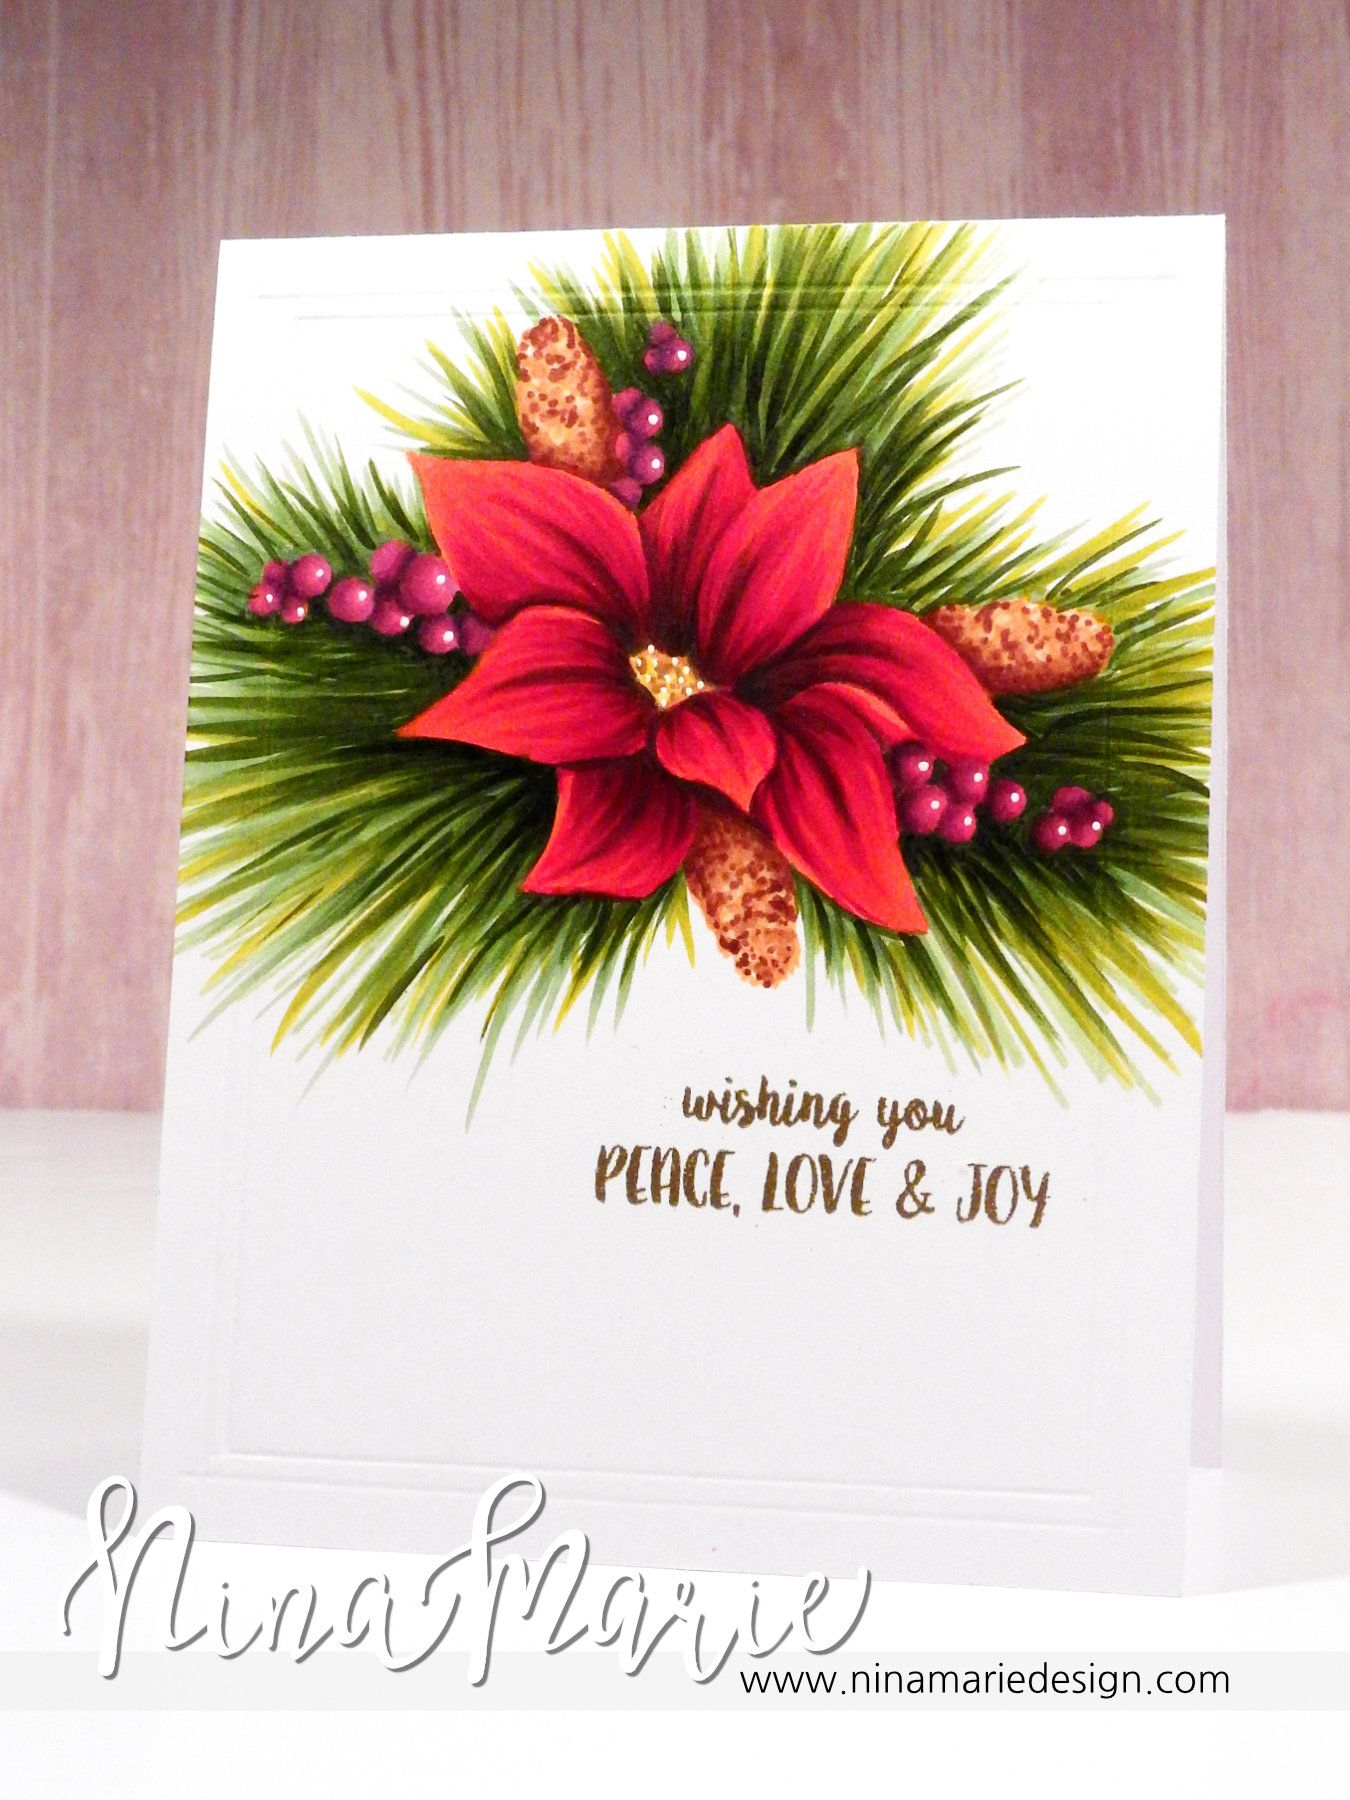 No Line Copic Coloring - Poinsettia Cluster Christmas Card by Nina Marie Design.